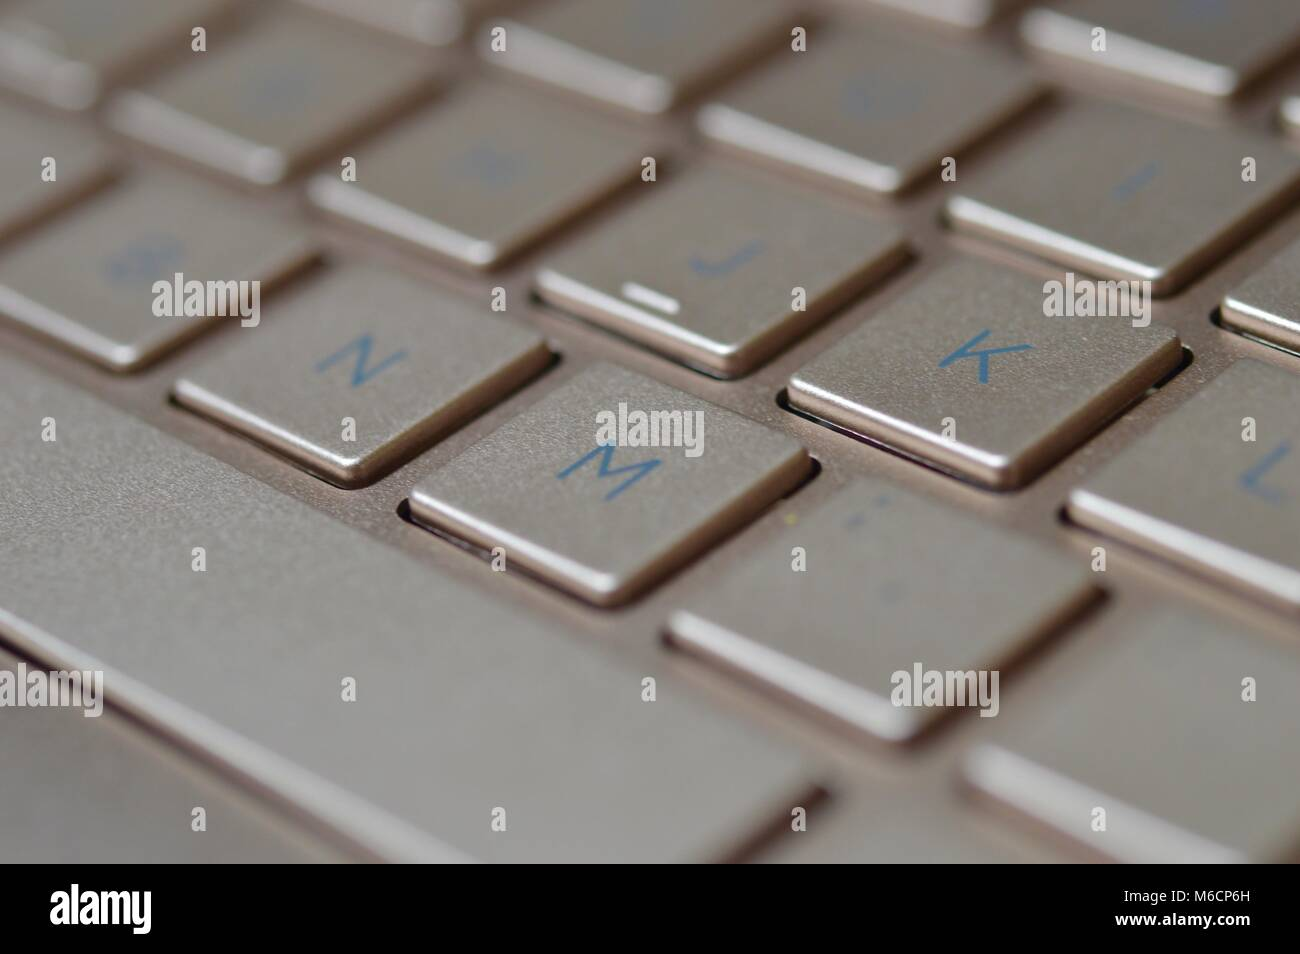 Keyboard of a bronze colored laptop - Stock Image